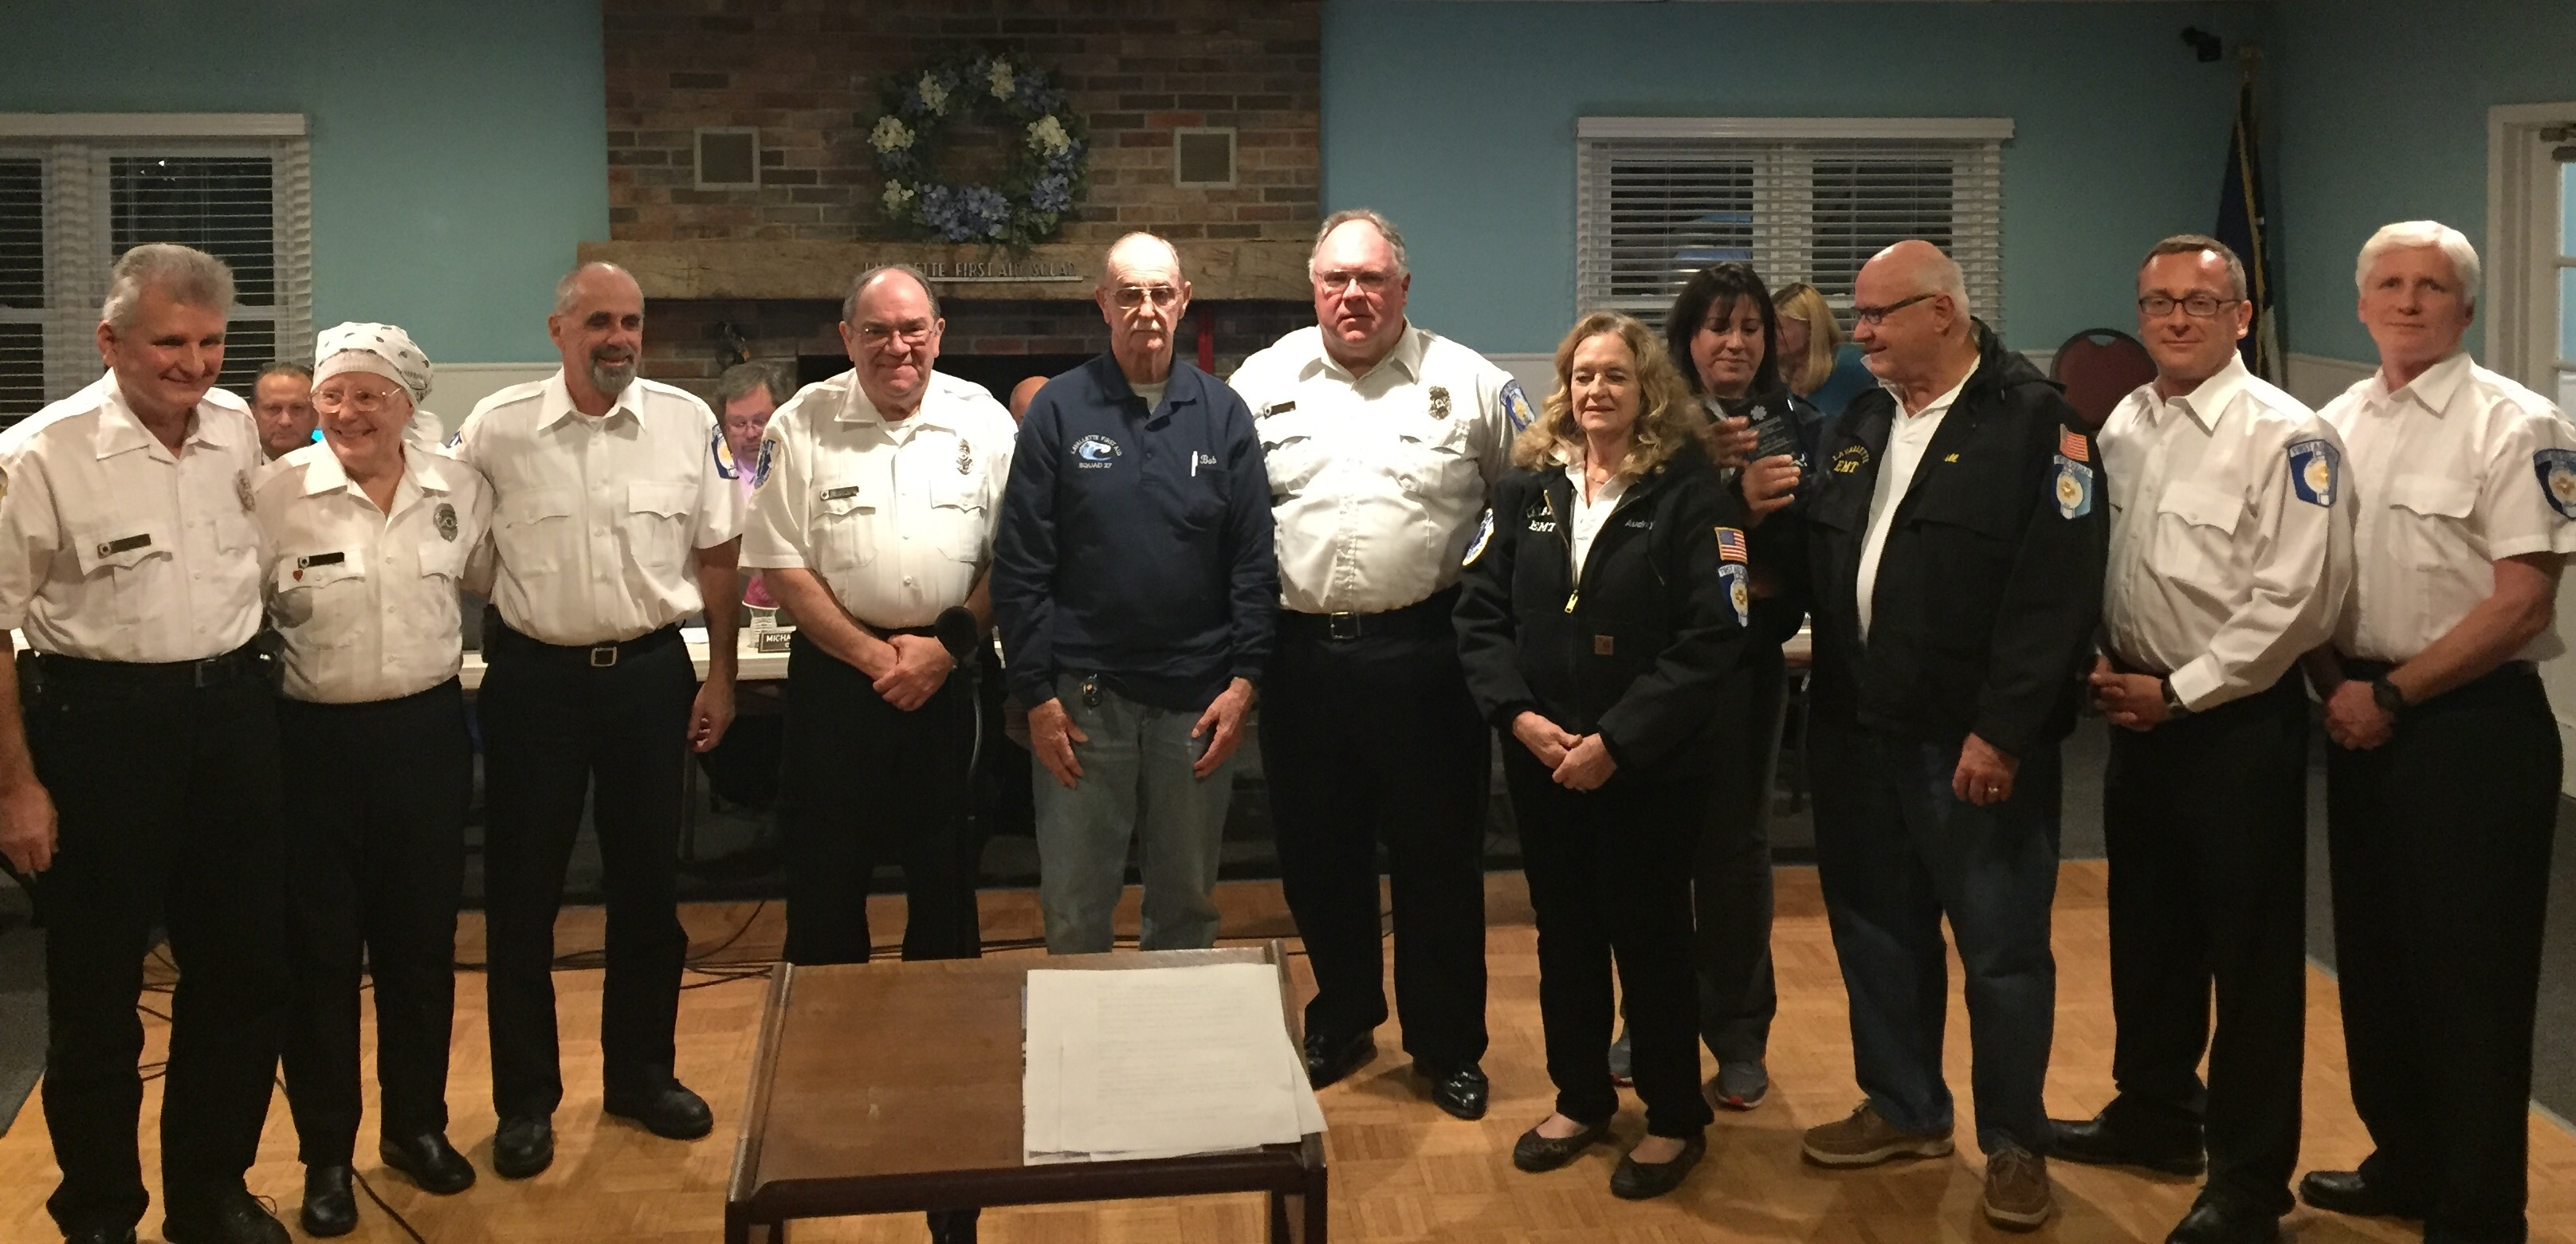 Members of the Lavallette First Aid Squad pose after receiving NJ's Outstanding Agency award. (Photo: Daniel Nee)